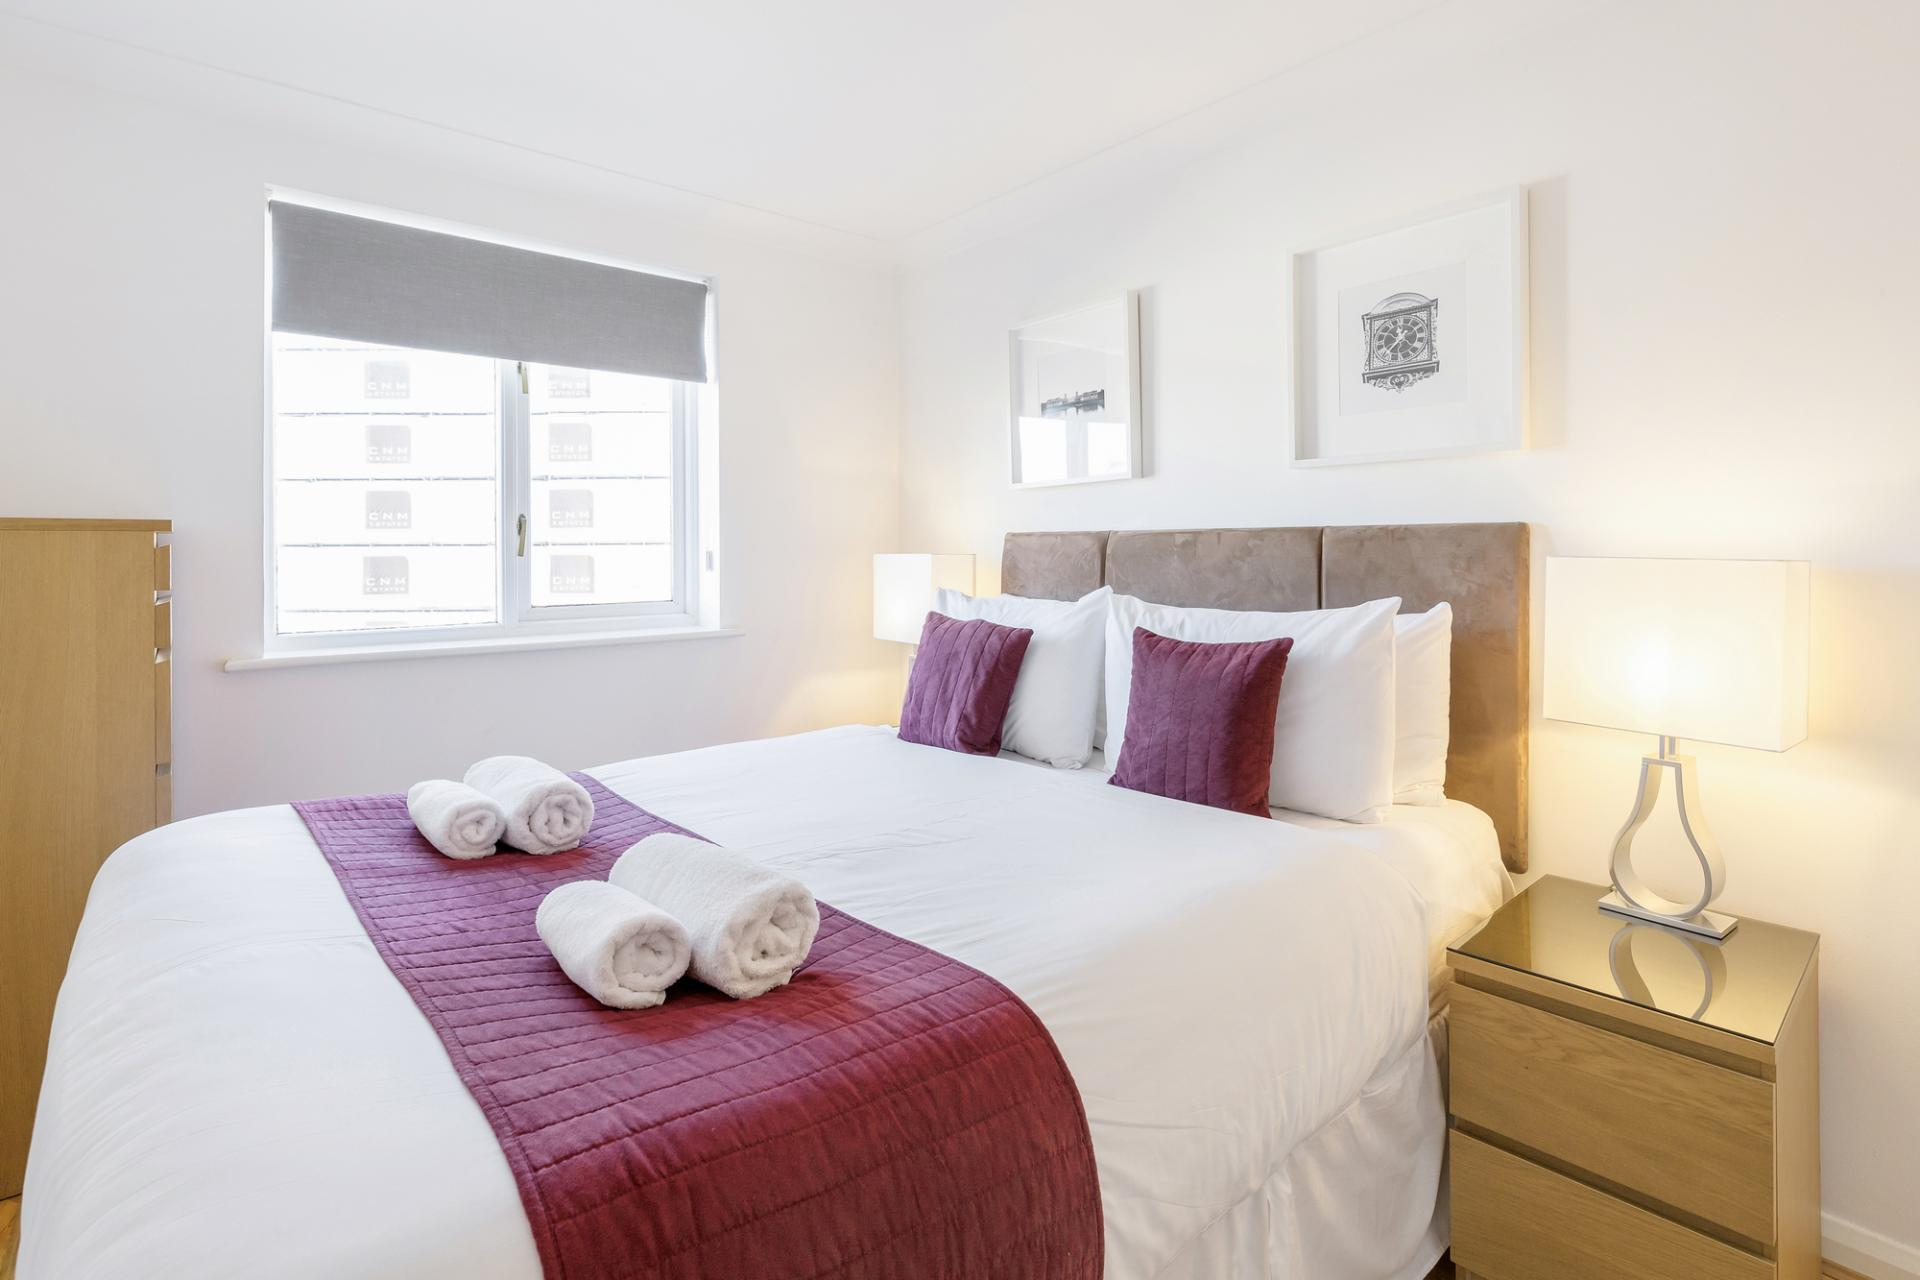 Bedroom at Regents Court, Kingston upon Thames, London